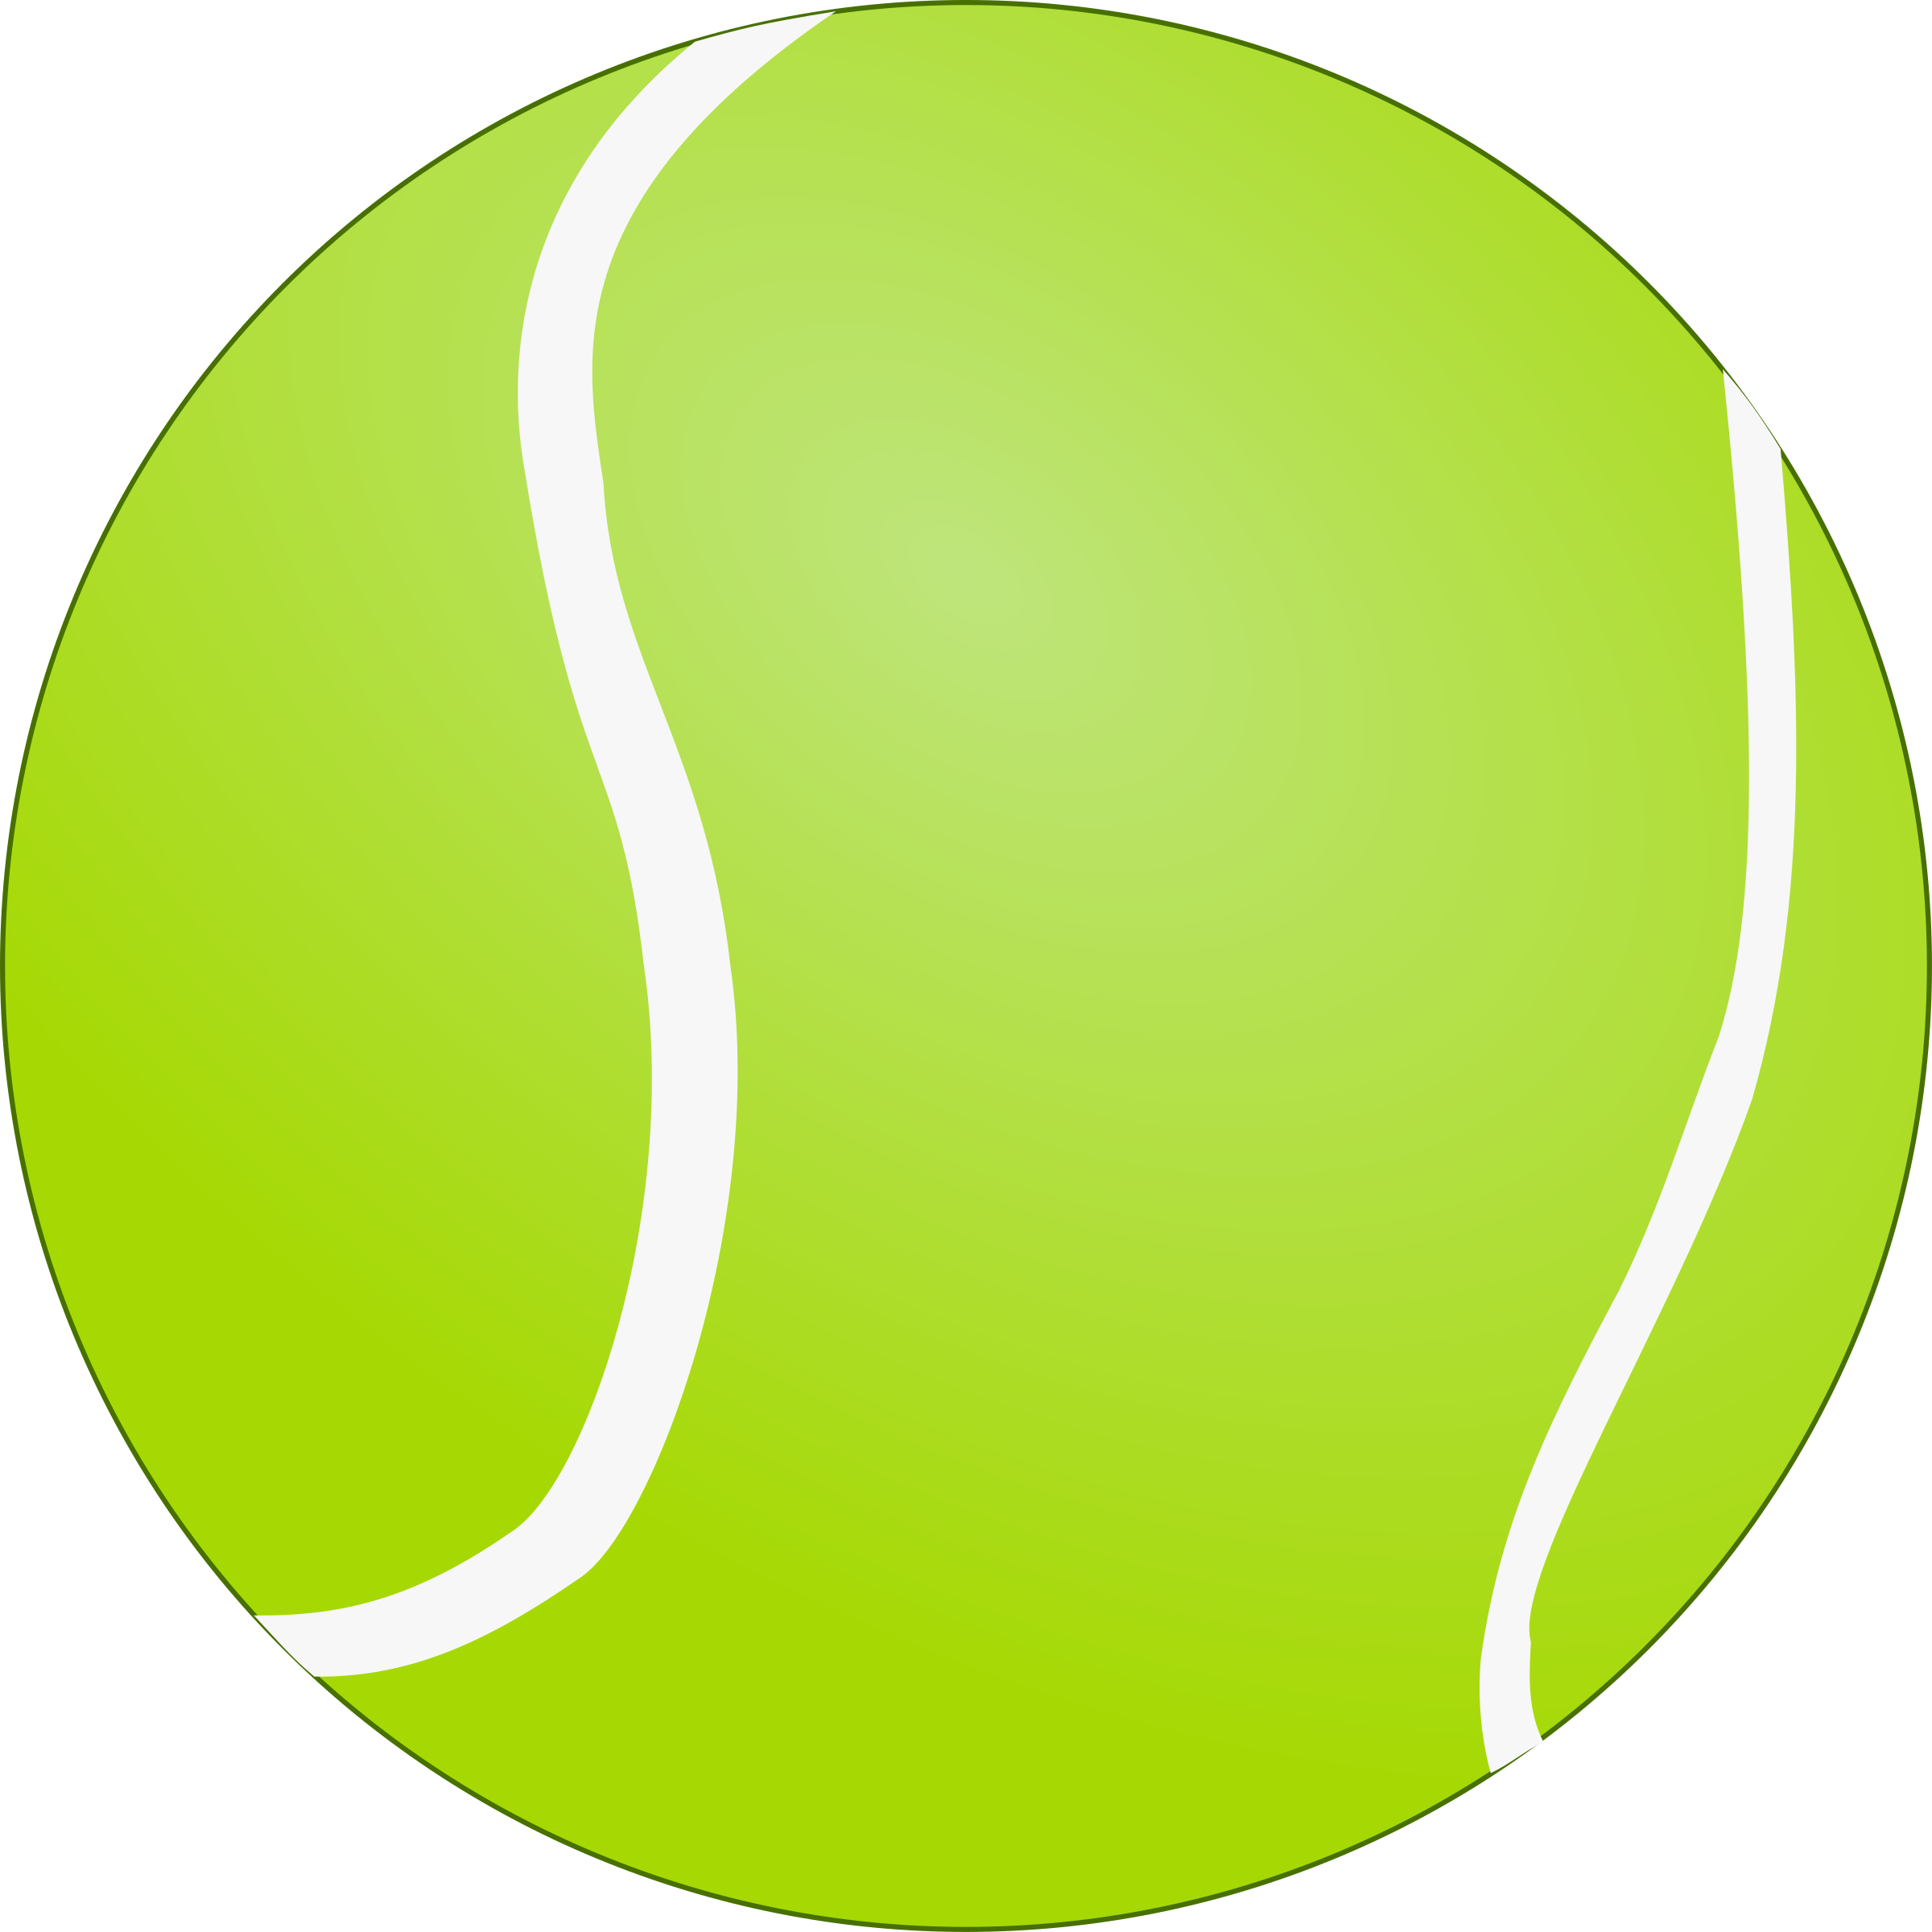 2400x2400 Tennis Ball clipart bola